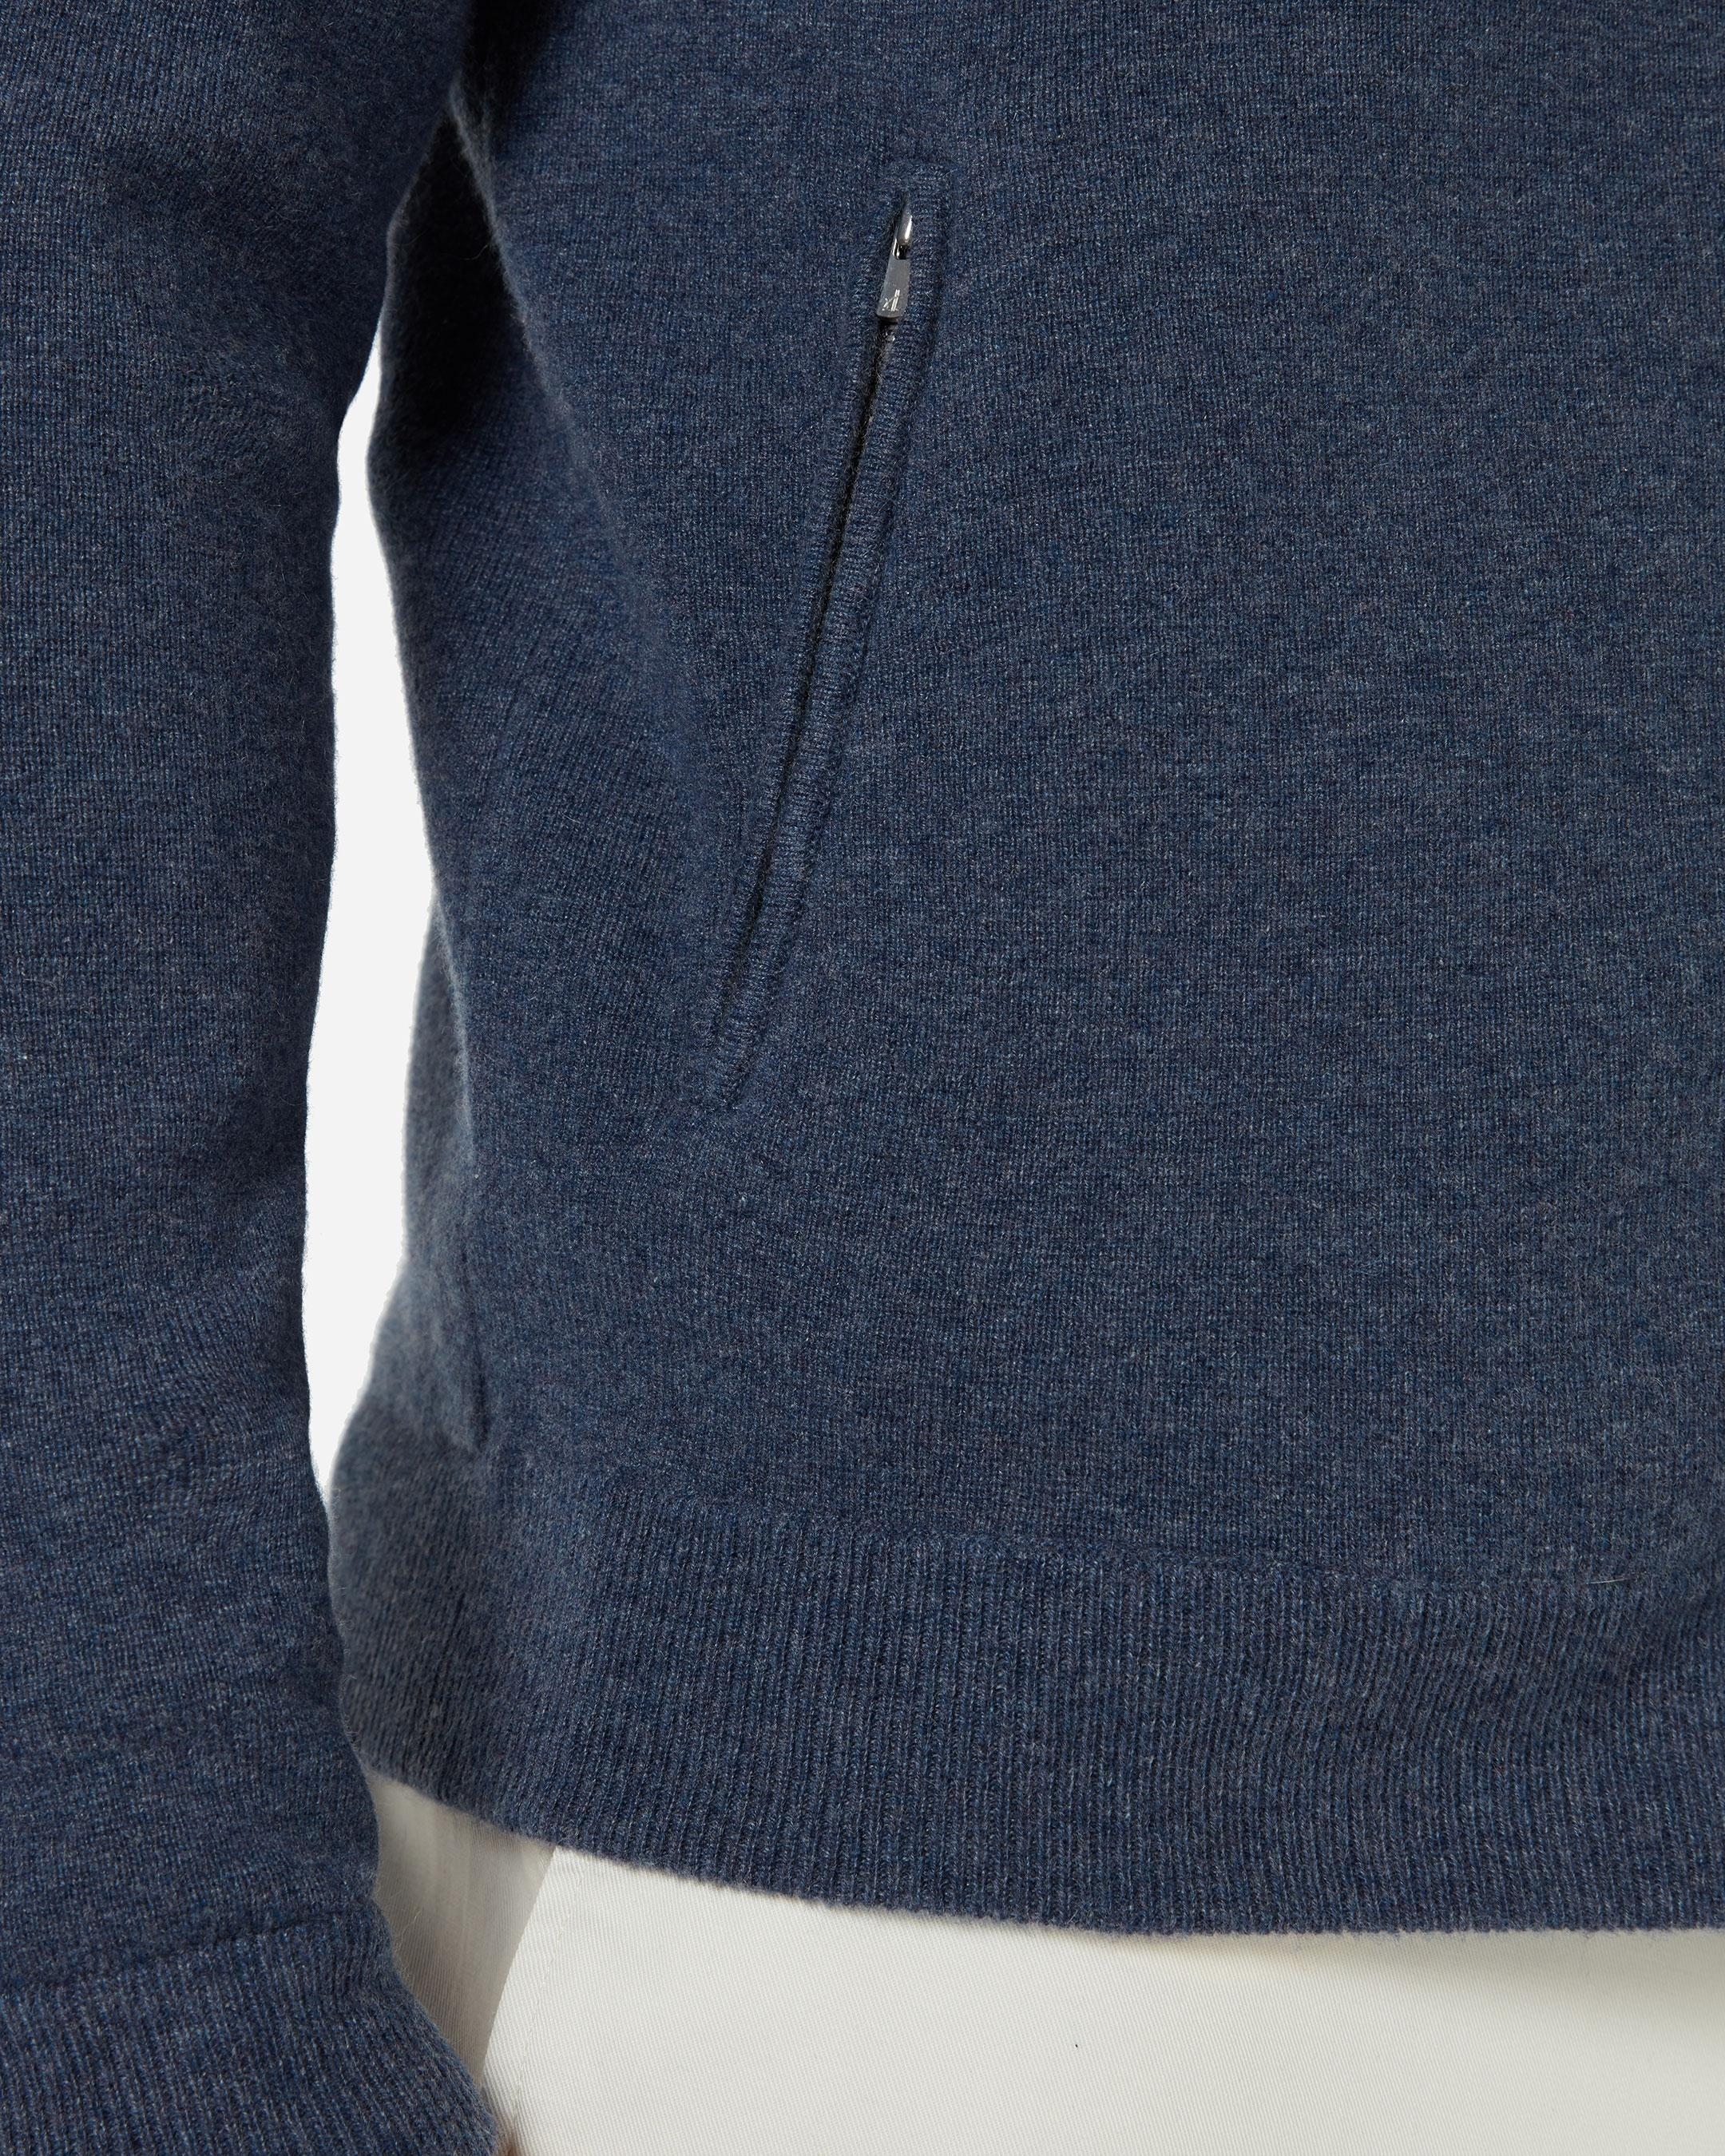 4e5c17f35c4 N.Peal Cashmere Knitted Cashmere Bomber Jacket in Blue for Men - Lyst